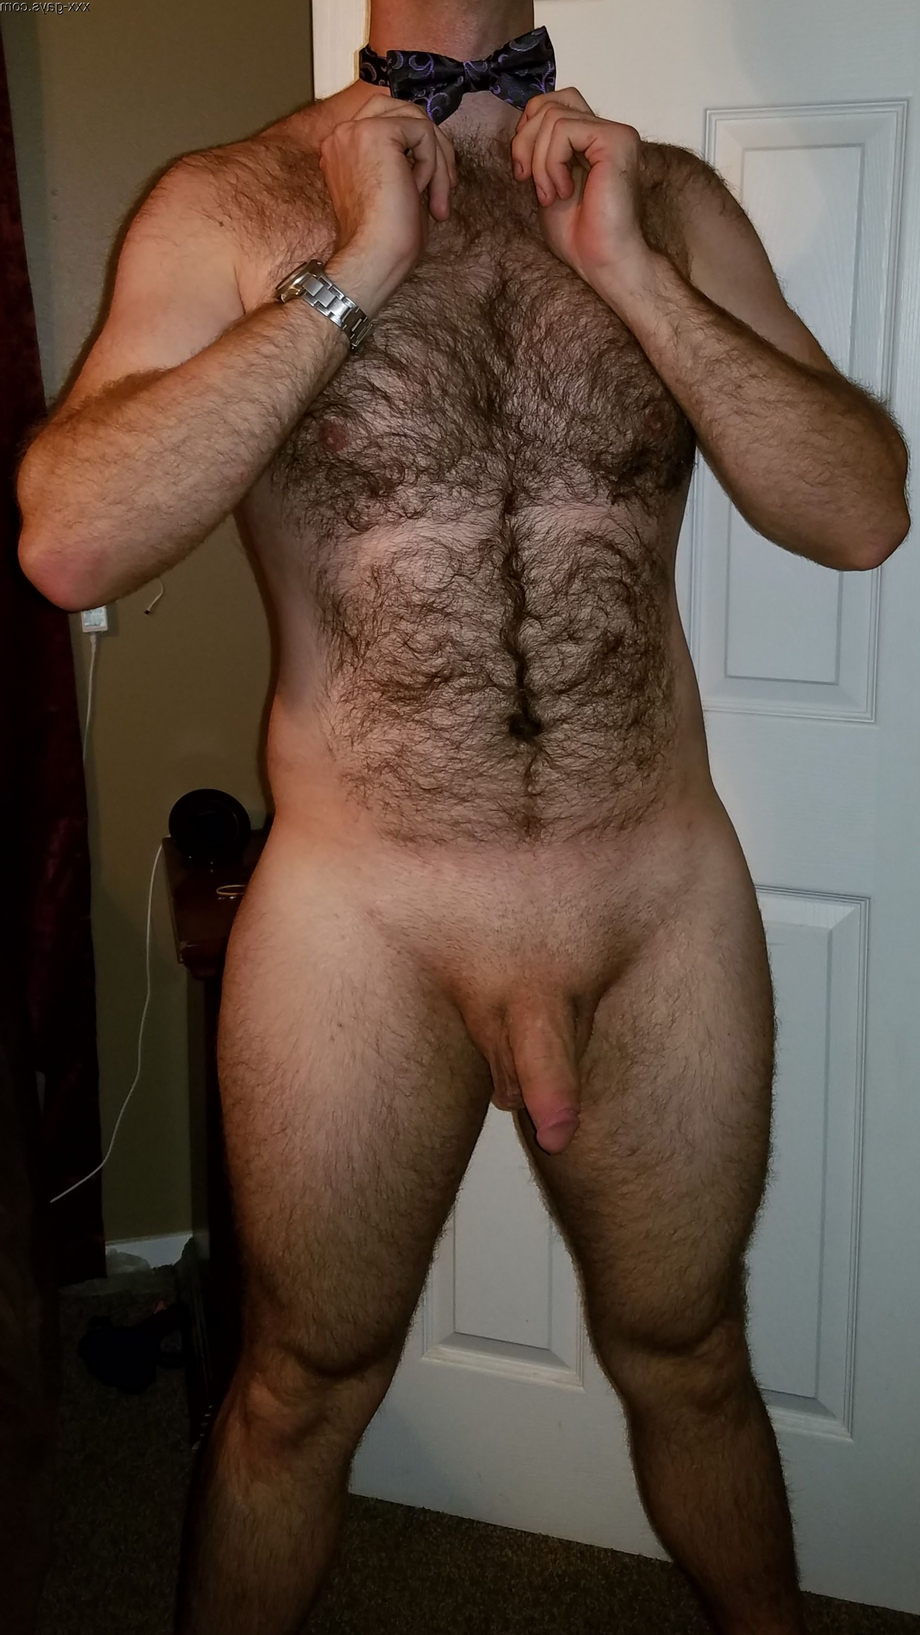 Here is a requested photo | Hairy  Porn XXX | Hot XXX Gays